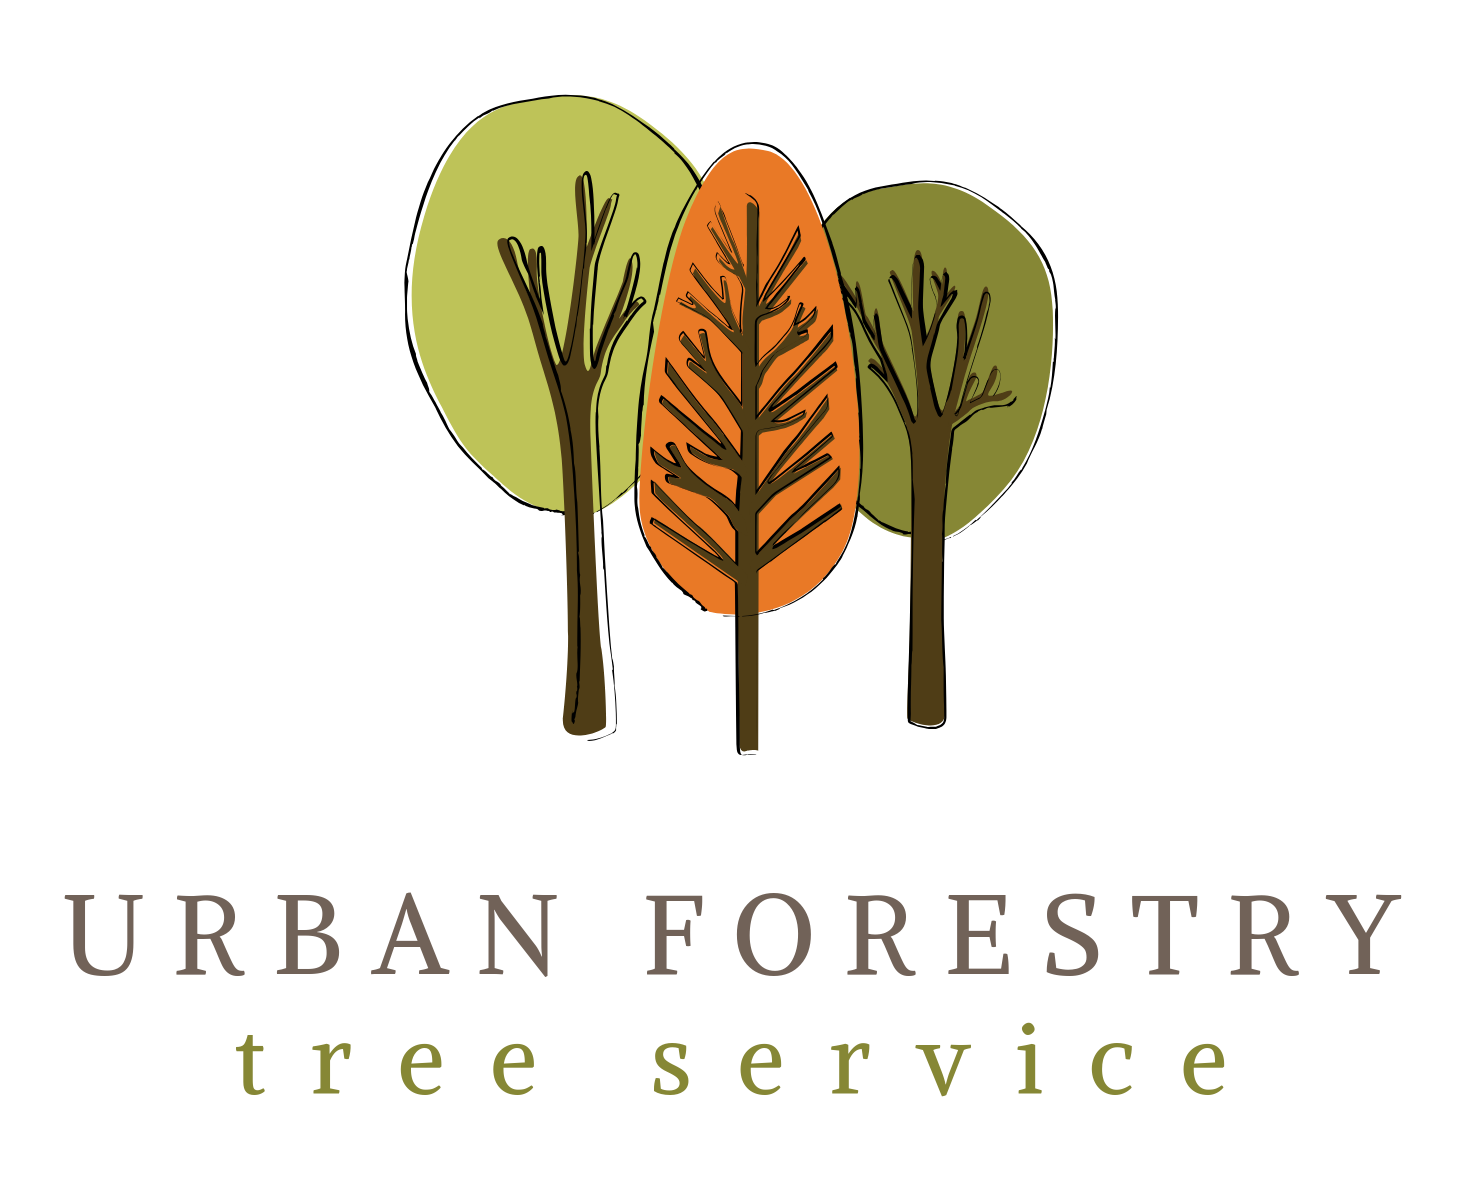 Urban Forestry Tree Service (1)